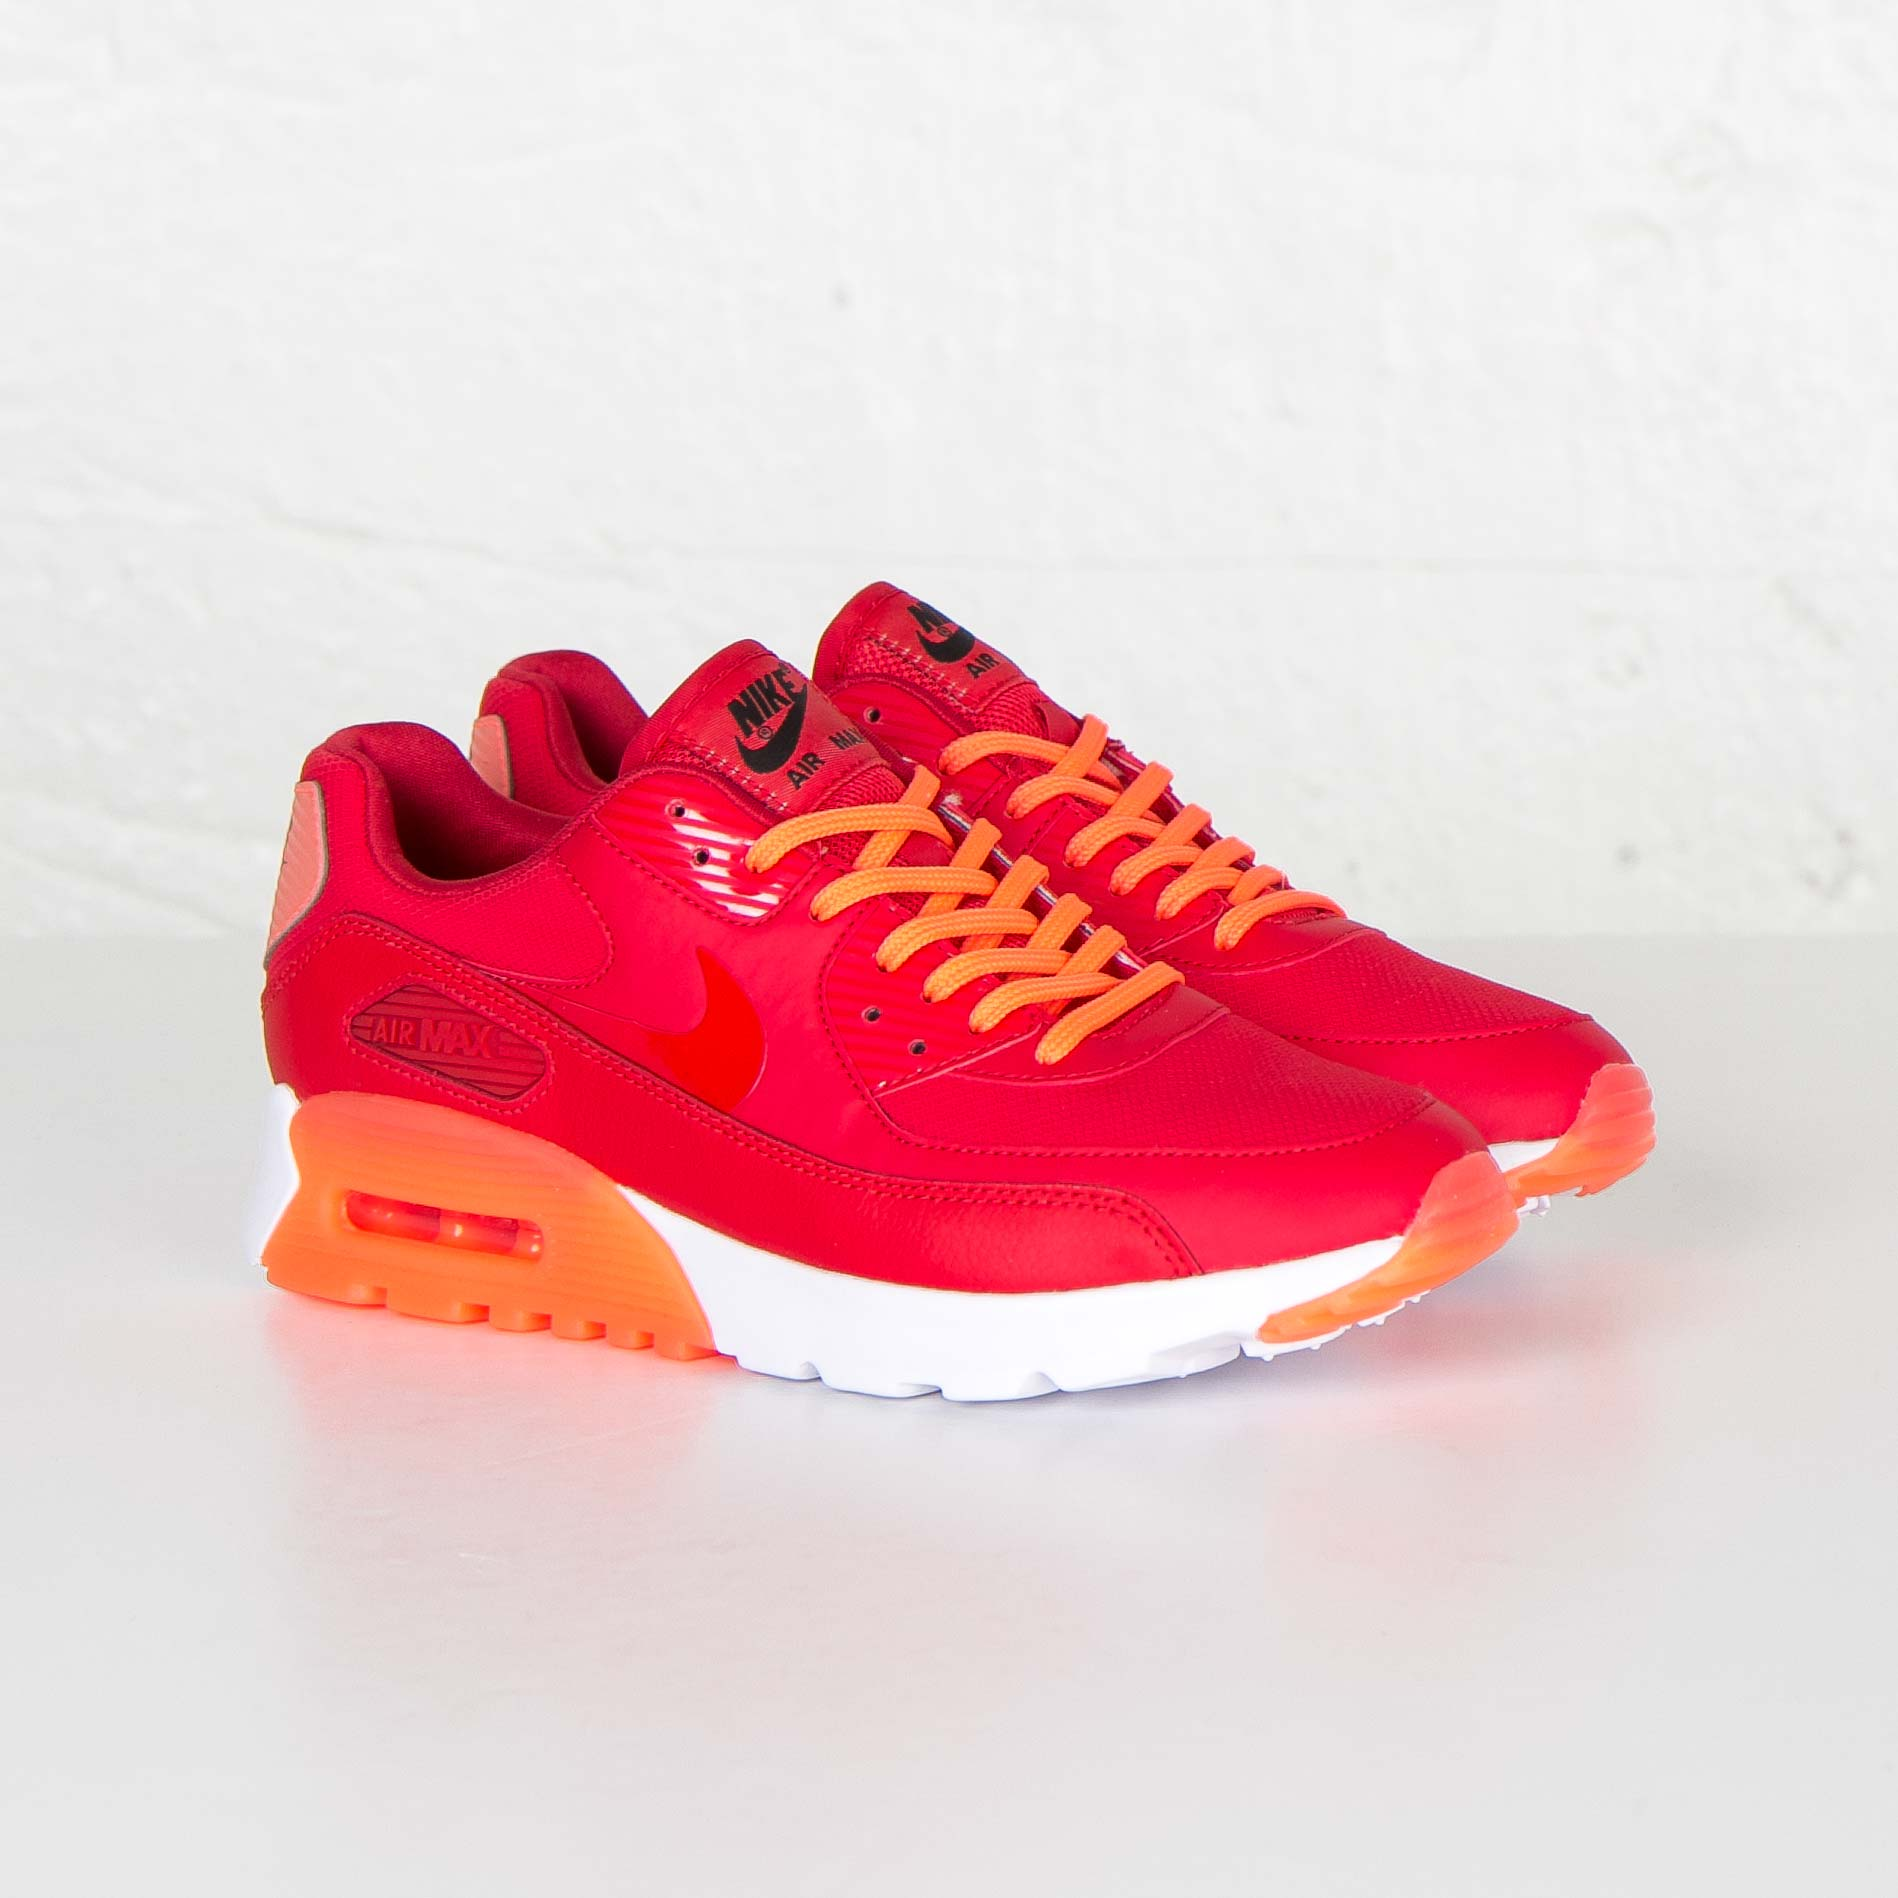 new product c0a0d 5d927 Nike W Air Max 90 Ultra Essential - 724981-602 ...